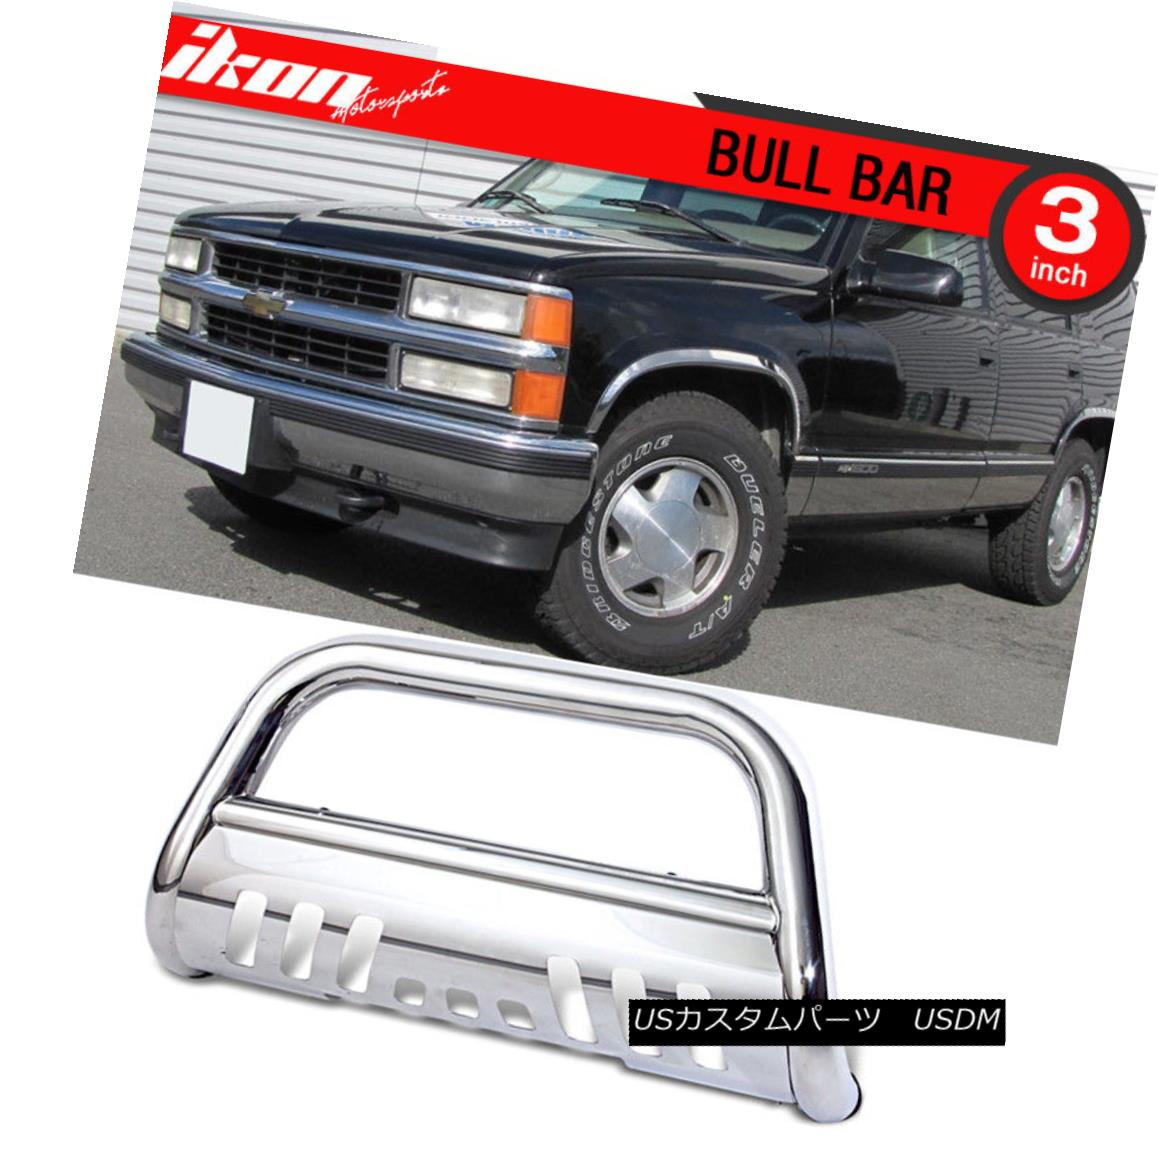 グリル For 88-98 Chevy Gmc C/K 1500 95-99 Yukon 92-94 Jimmy Bull Bar Grill Push Guard 88-98 Chevy Gmc C / K 1500 95-99ユーコン92-94ジミーブルバーグリルプッシュガード